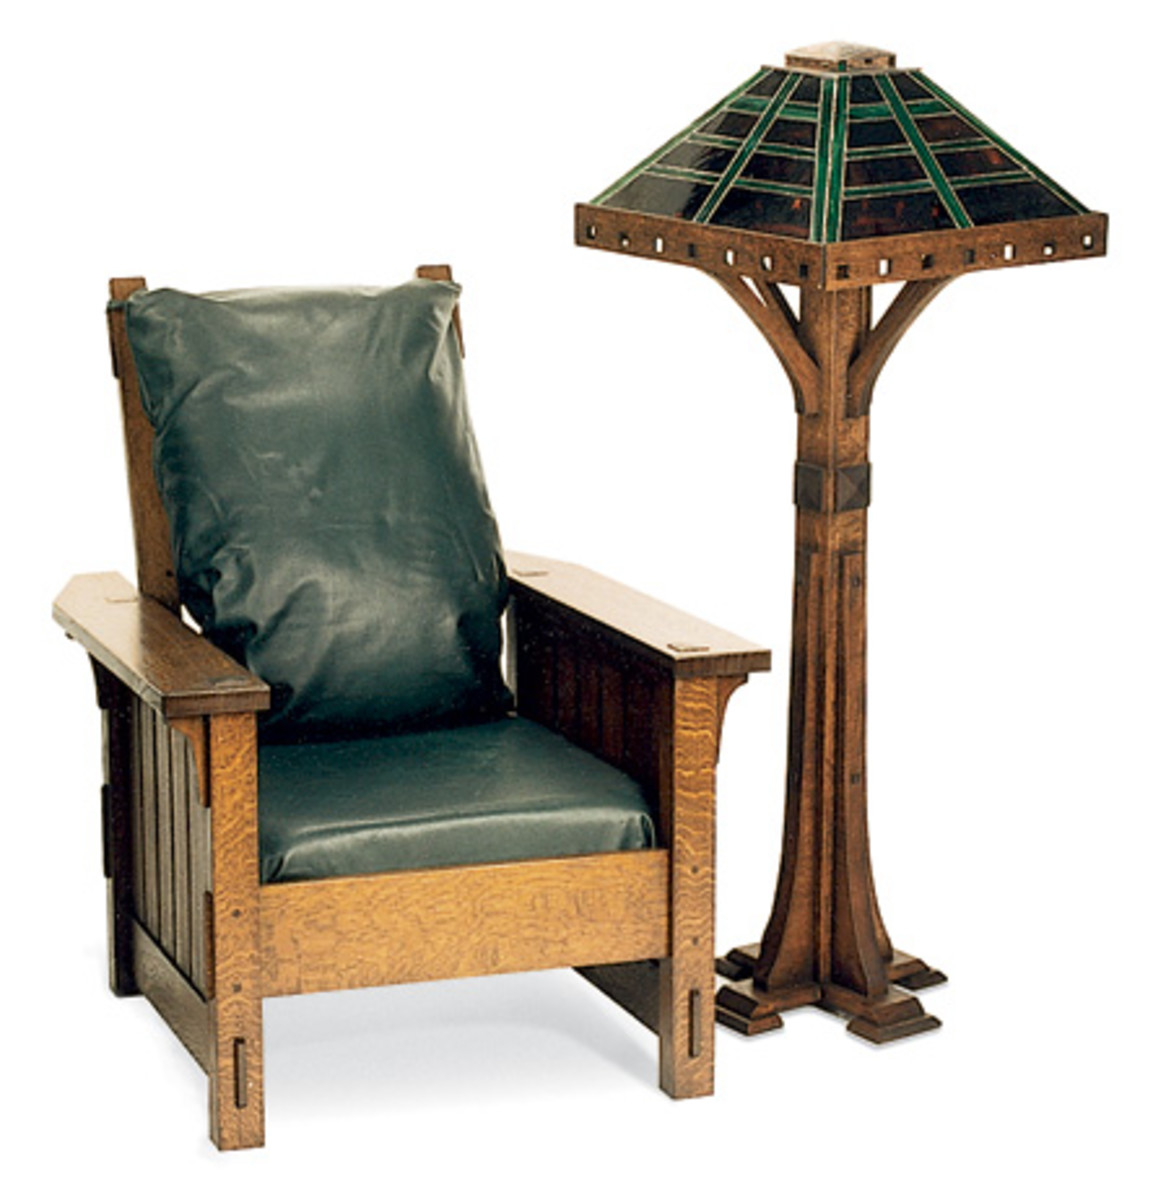 Arts & Crafts Furniture Expo Arts & Crafts Homes and the